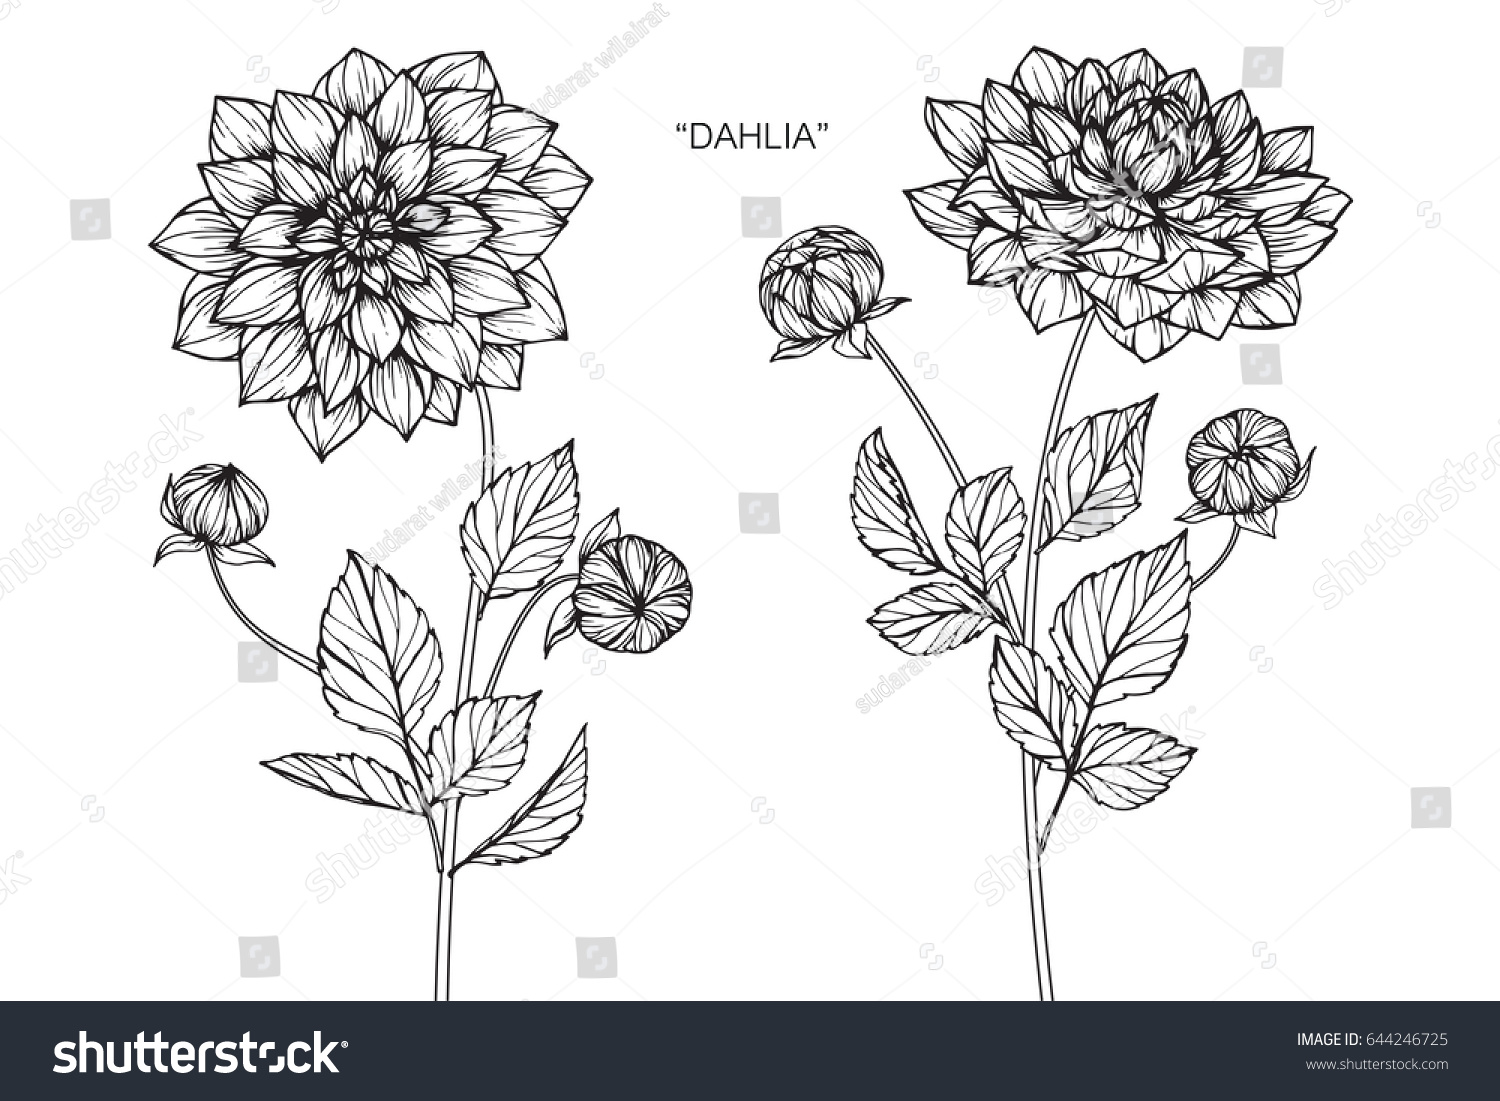 Dahlia Flower Line Drawing : Dahlia flowers drawing sketch lineart on stock vector